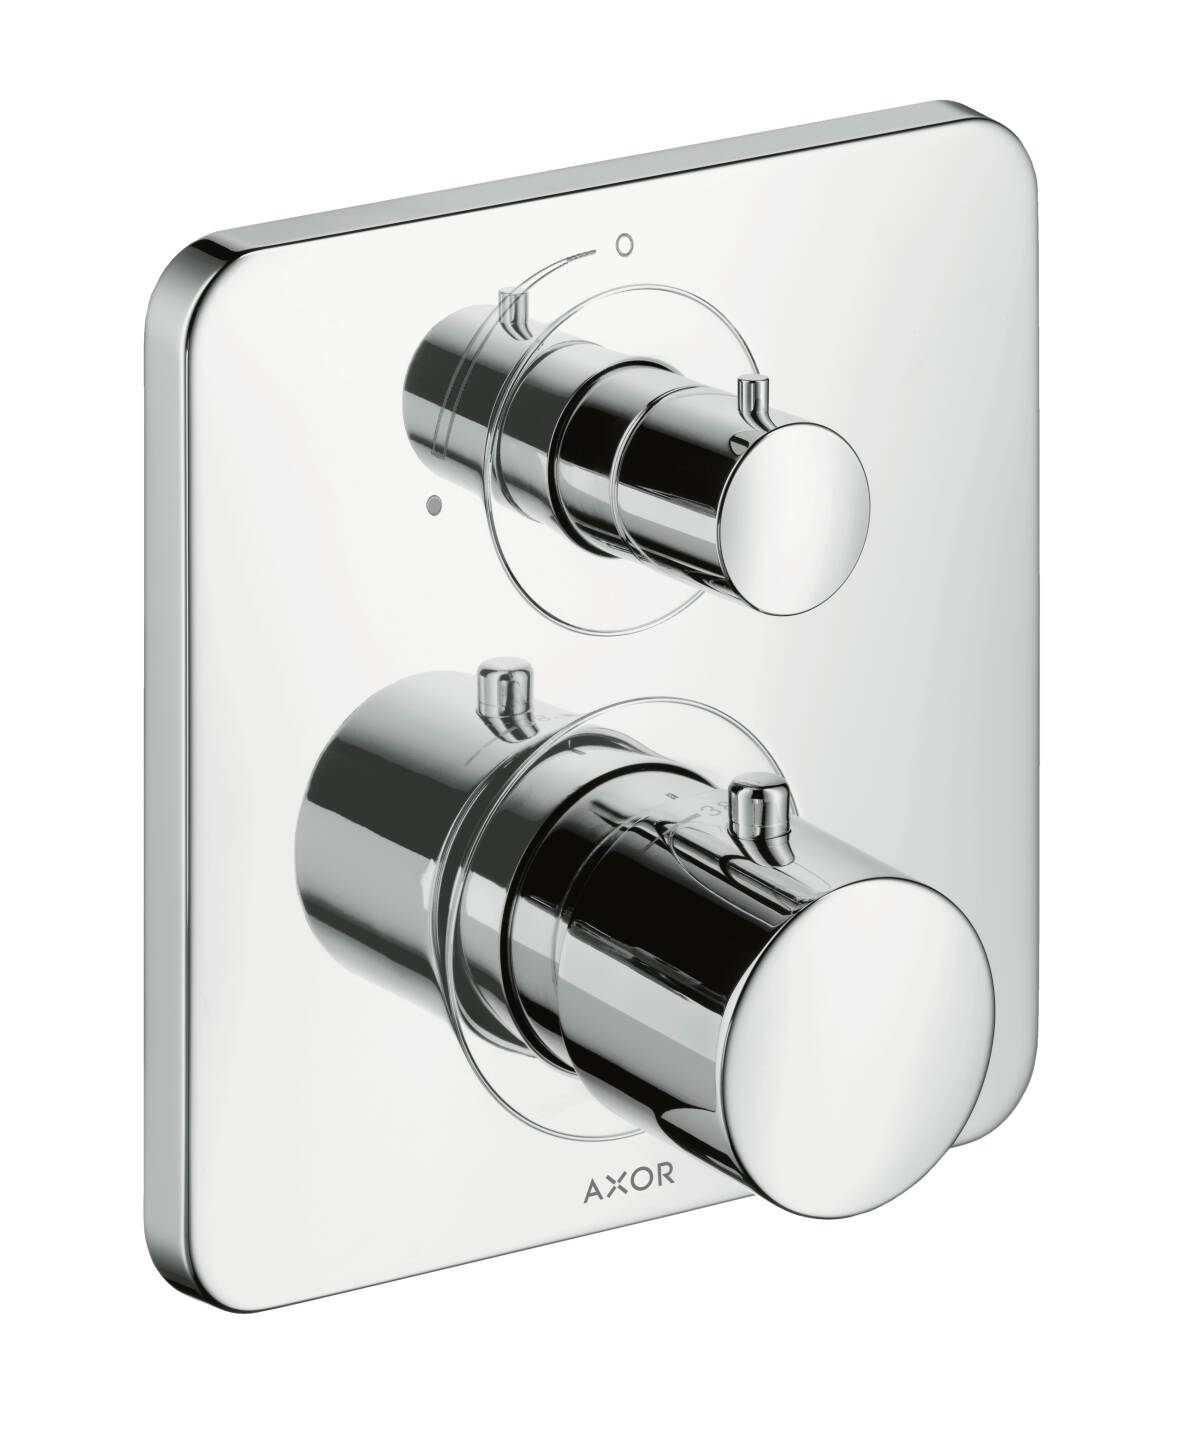 Thermostatic mixer for concealed installation with shut-off valve, Chrome, 34705000